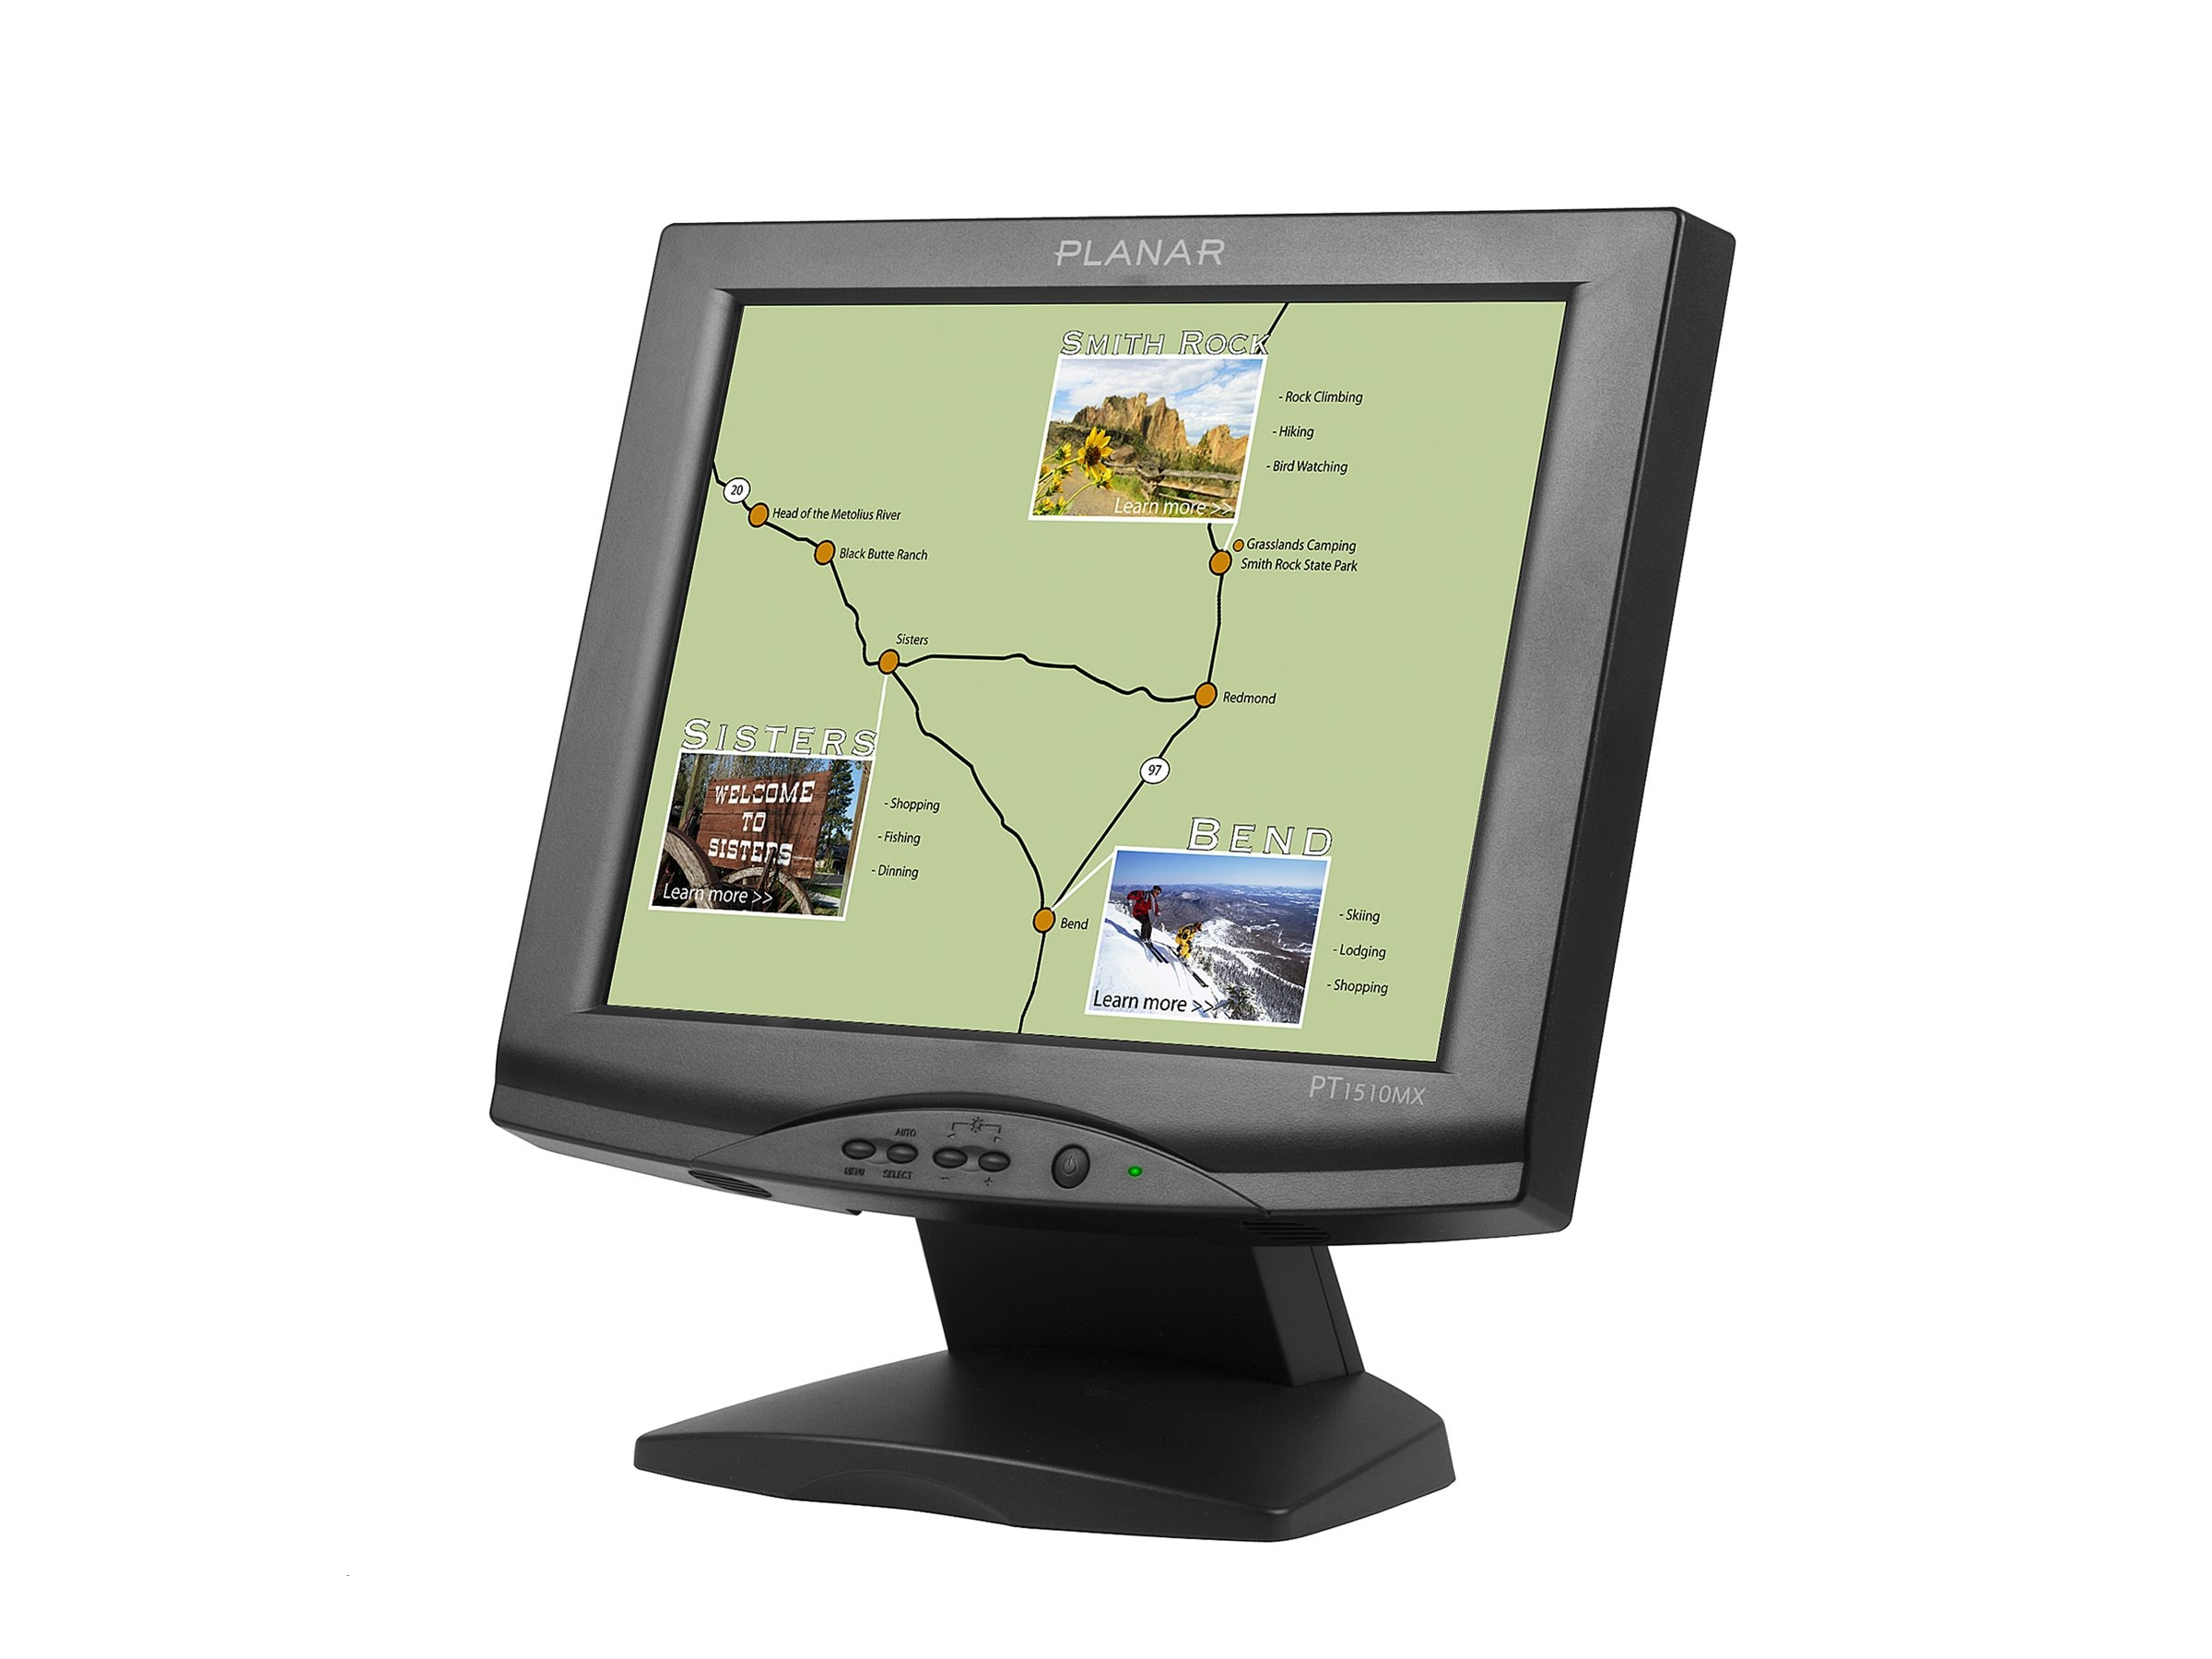 Planar 15 PT1510MX LCD Touchscreen Monitor with Speakers, Black, 997-3198-00, 7457353, Monitors - LCD